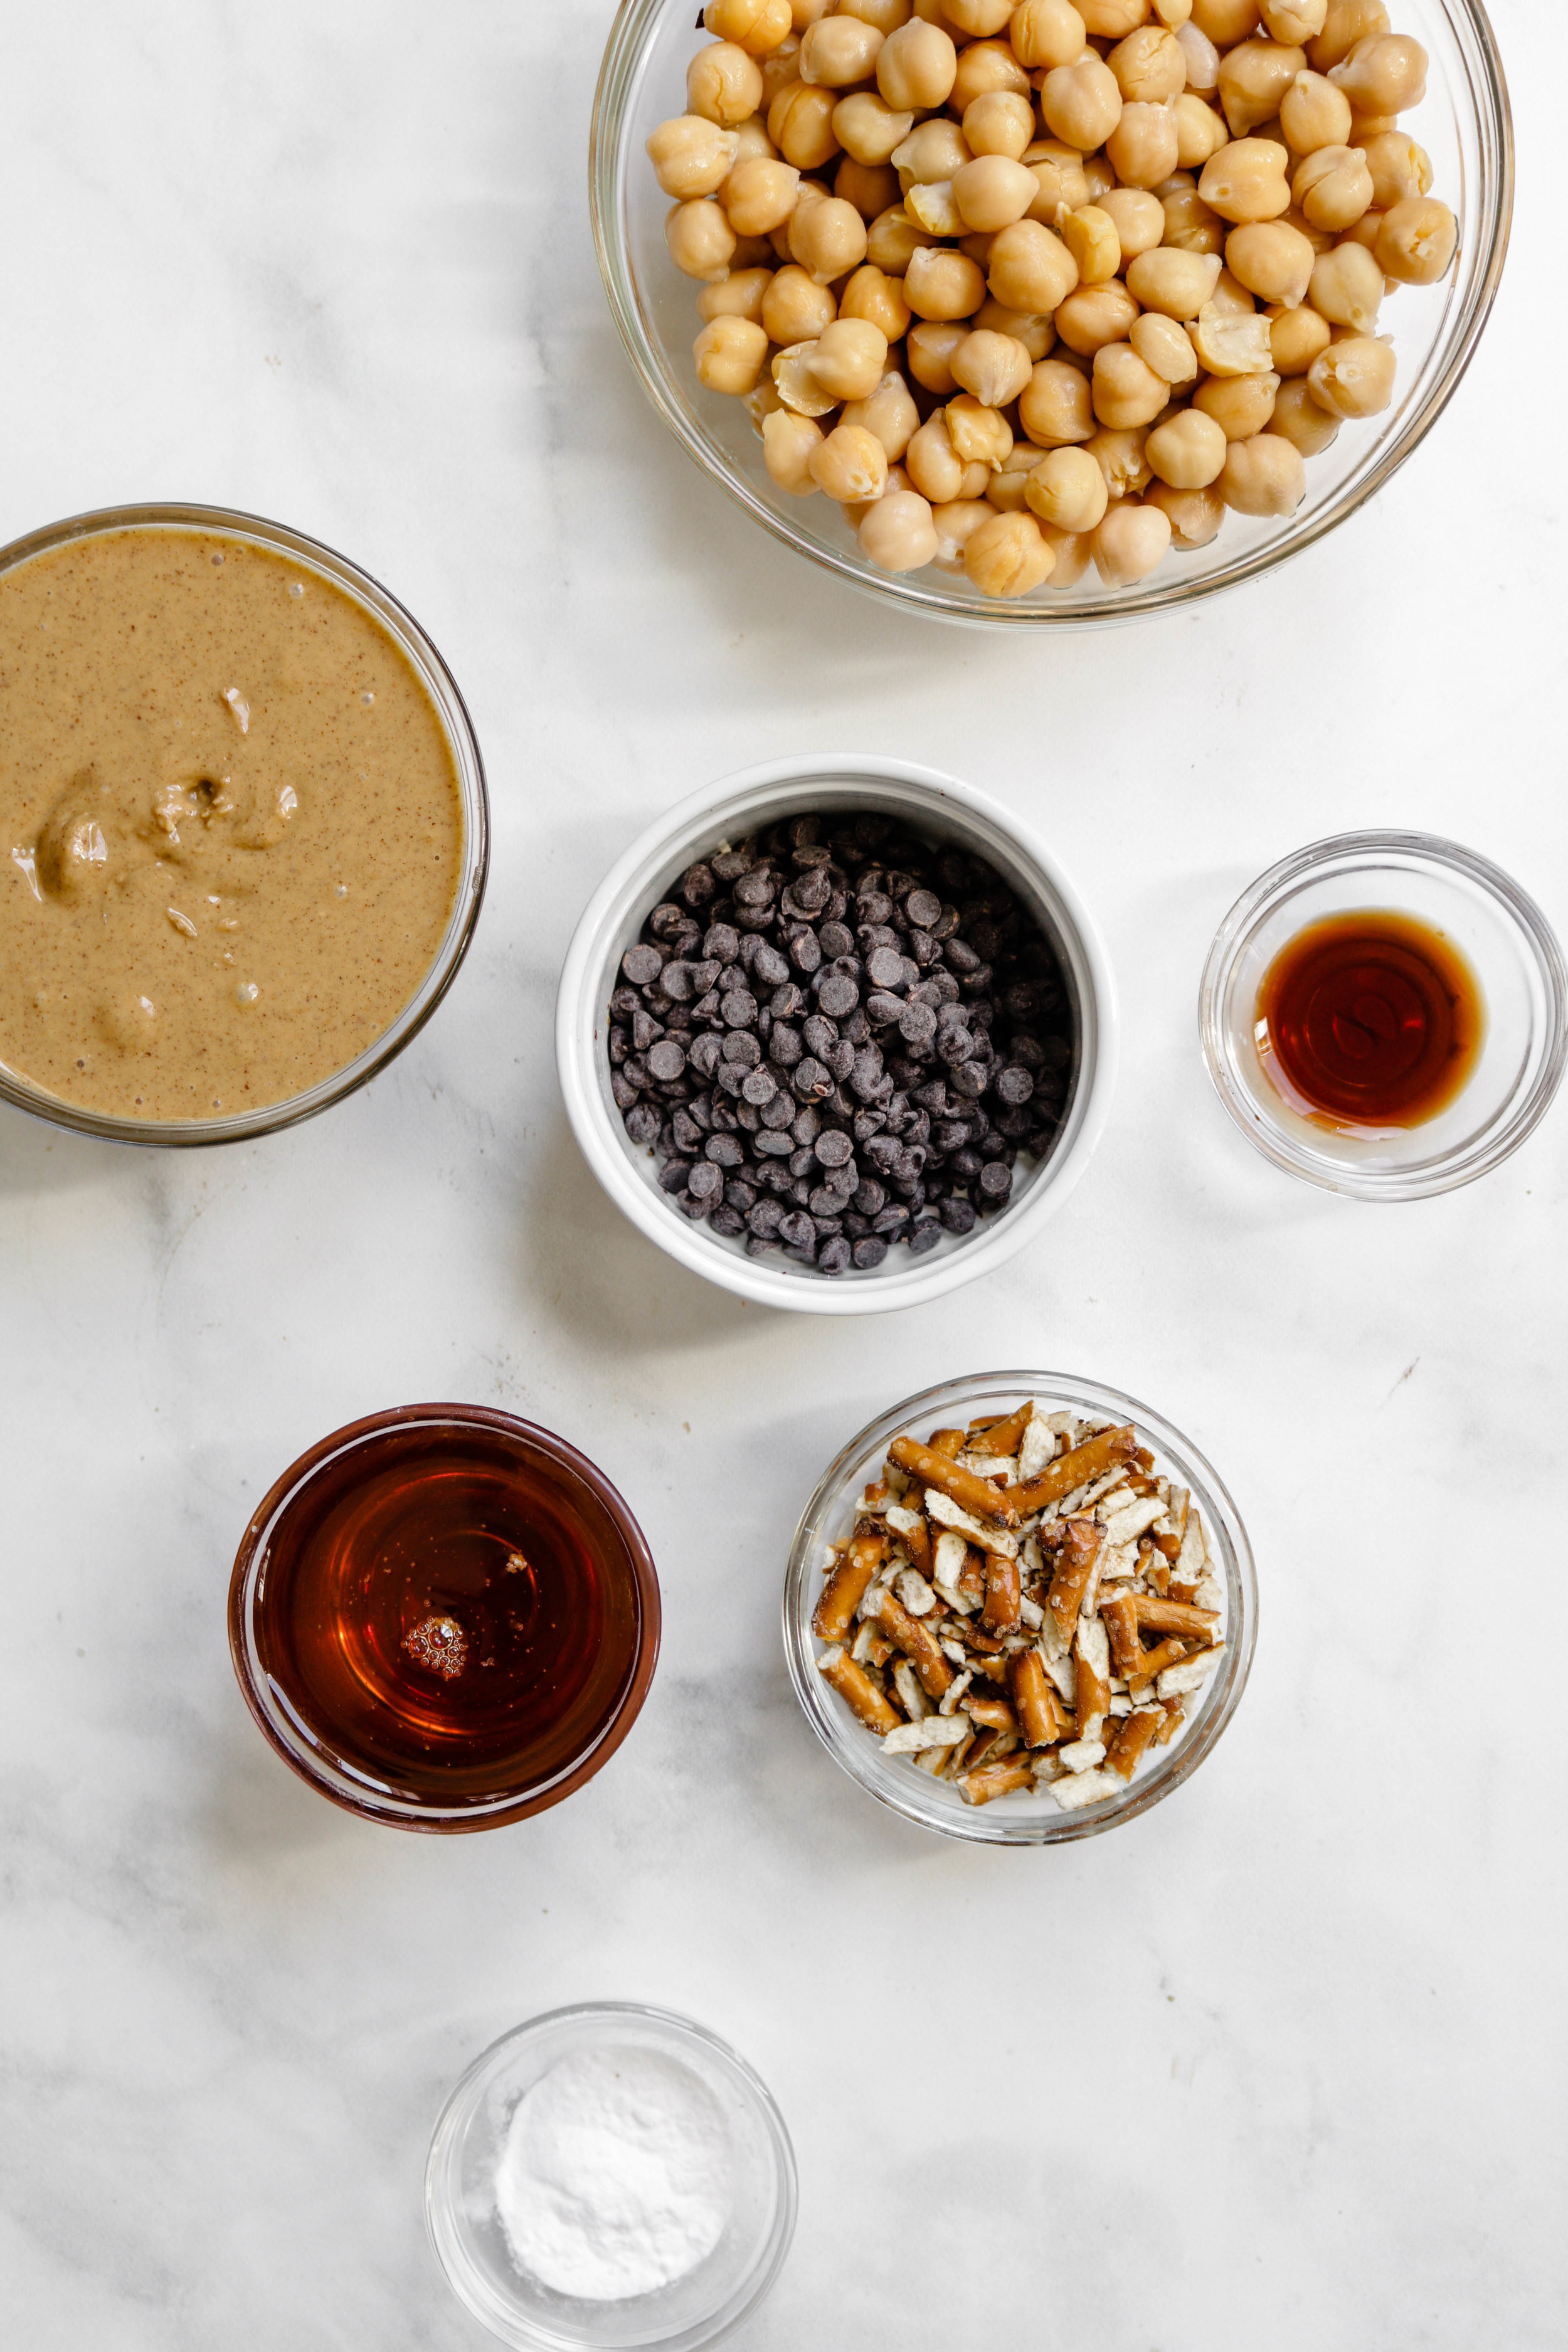 Chocolate Chip Chickpea Cookies ingredients